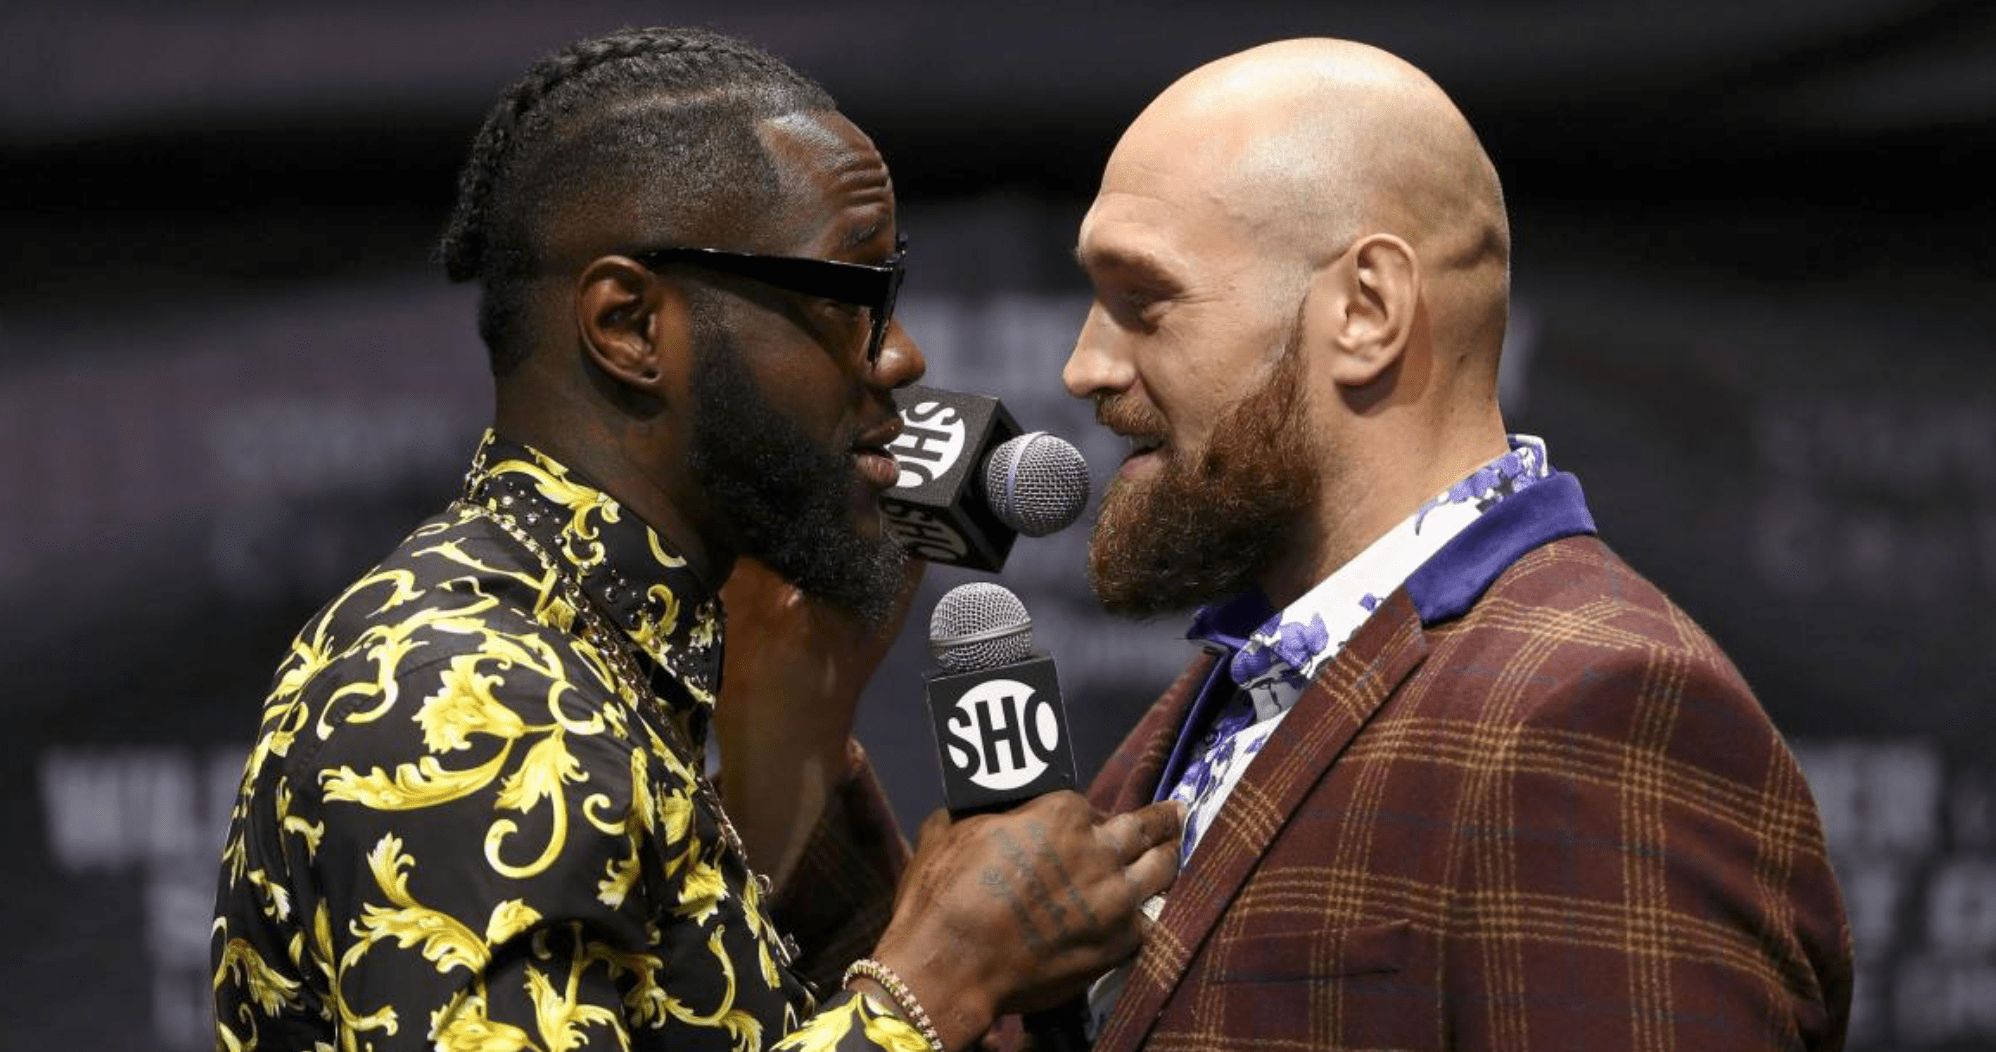 Tyson Fury: Deontay Wilder Will Get Knocked The F*** Out This Time